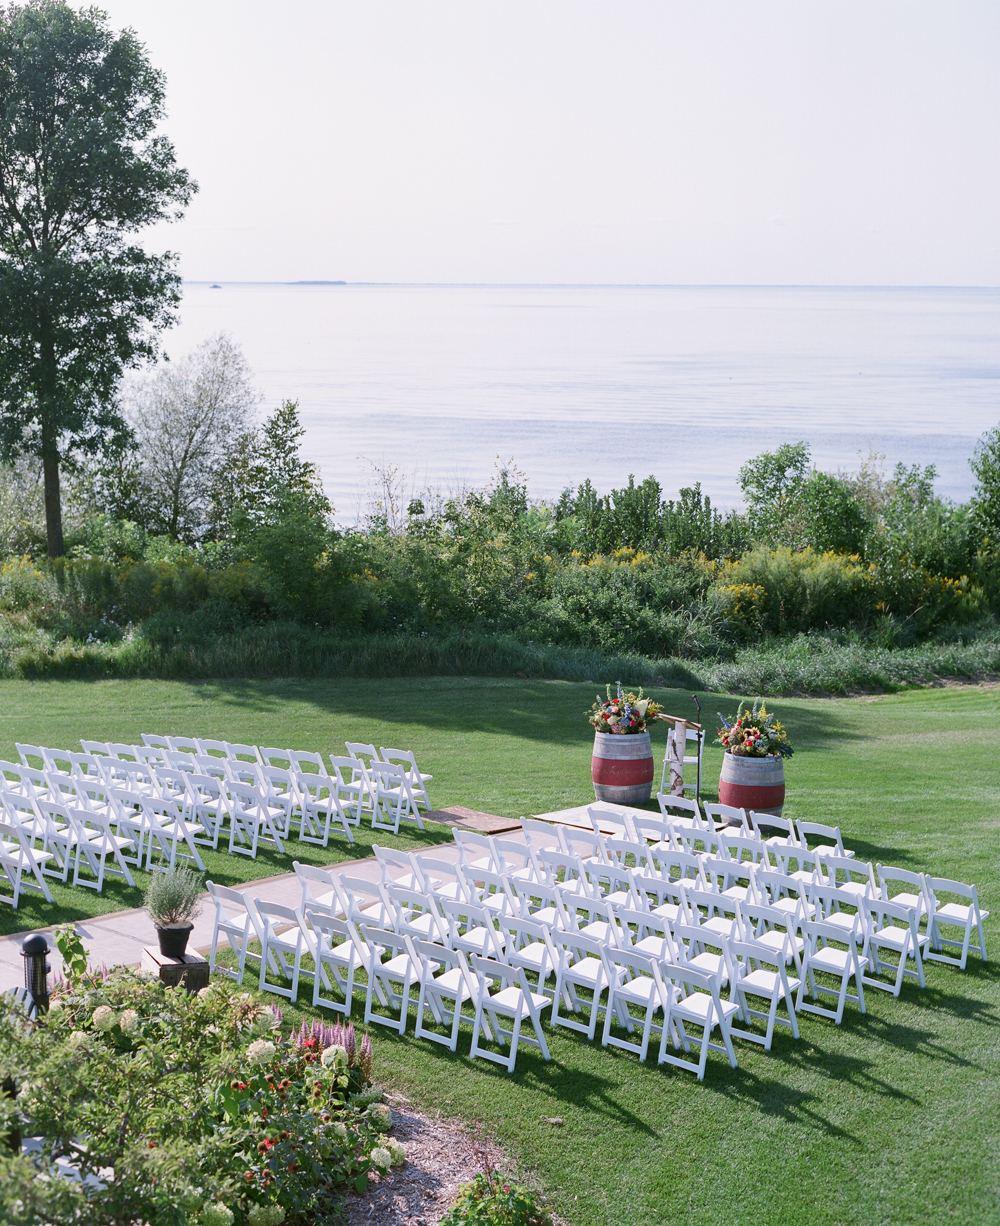 Door County Horseshoe Bay Wedding outdoor ceremony chairs